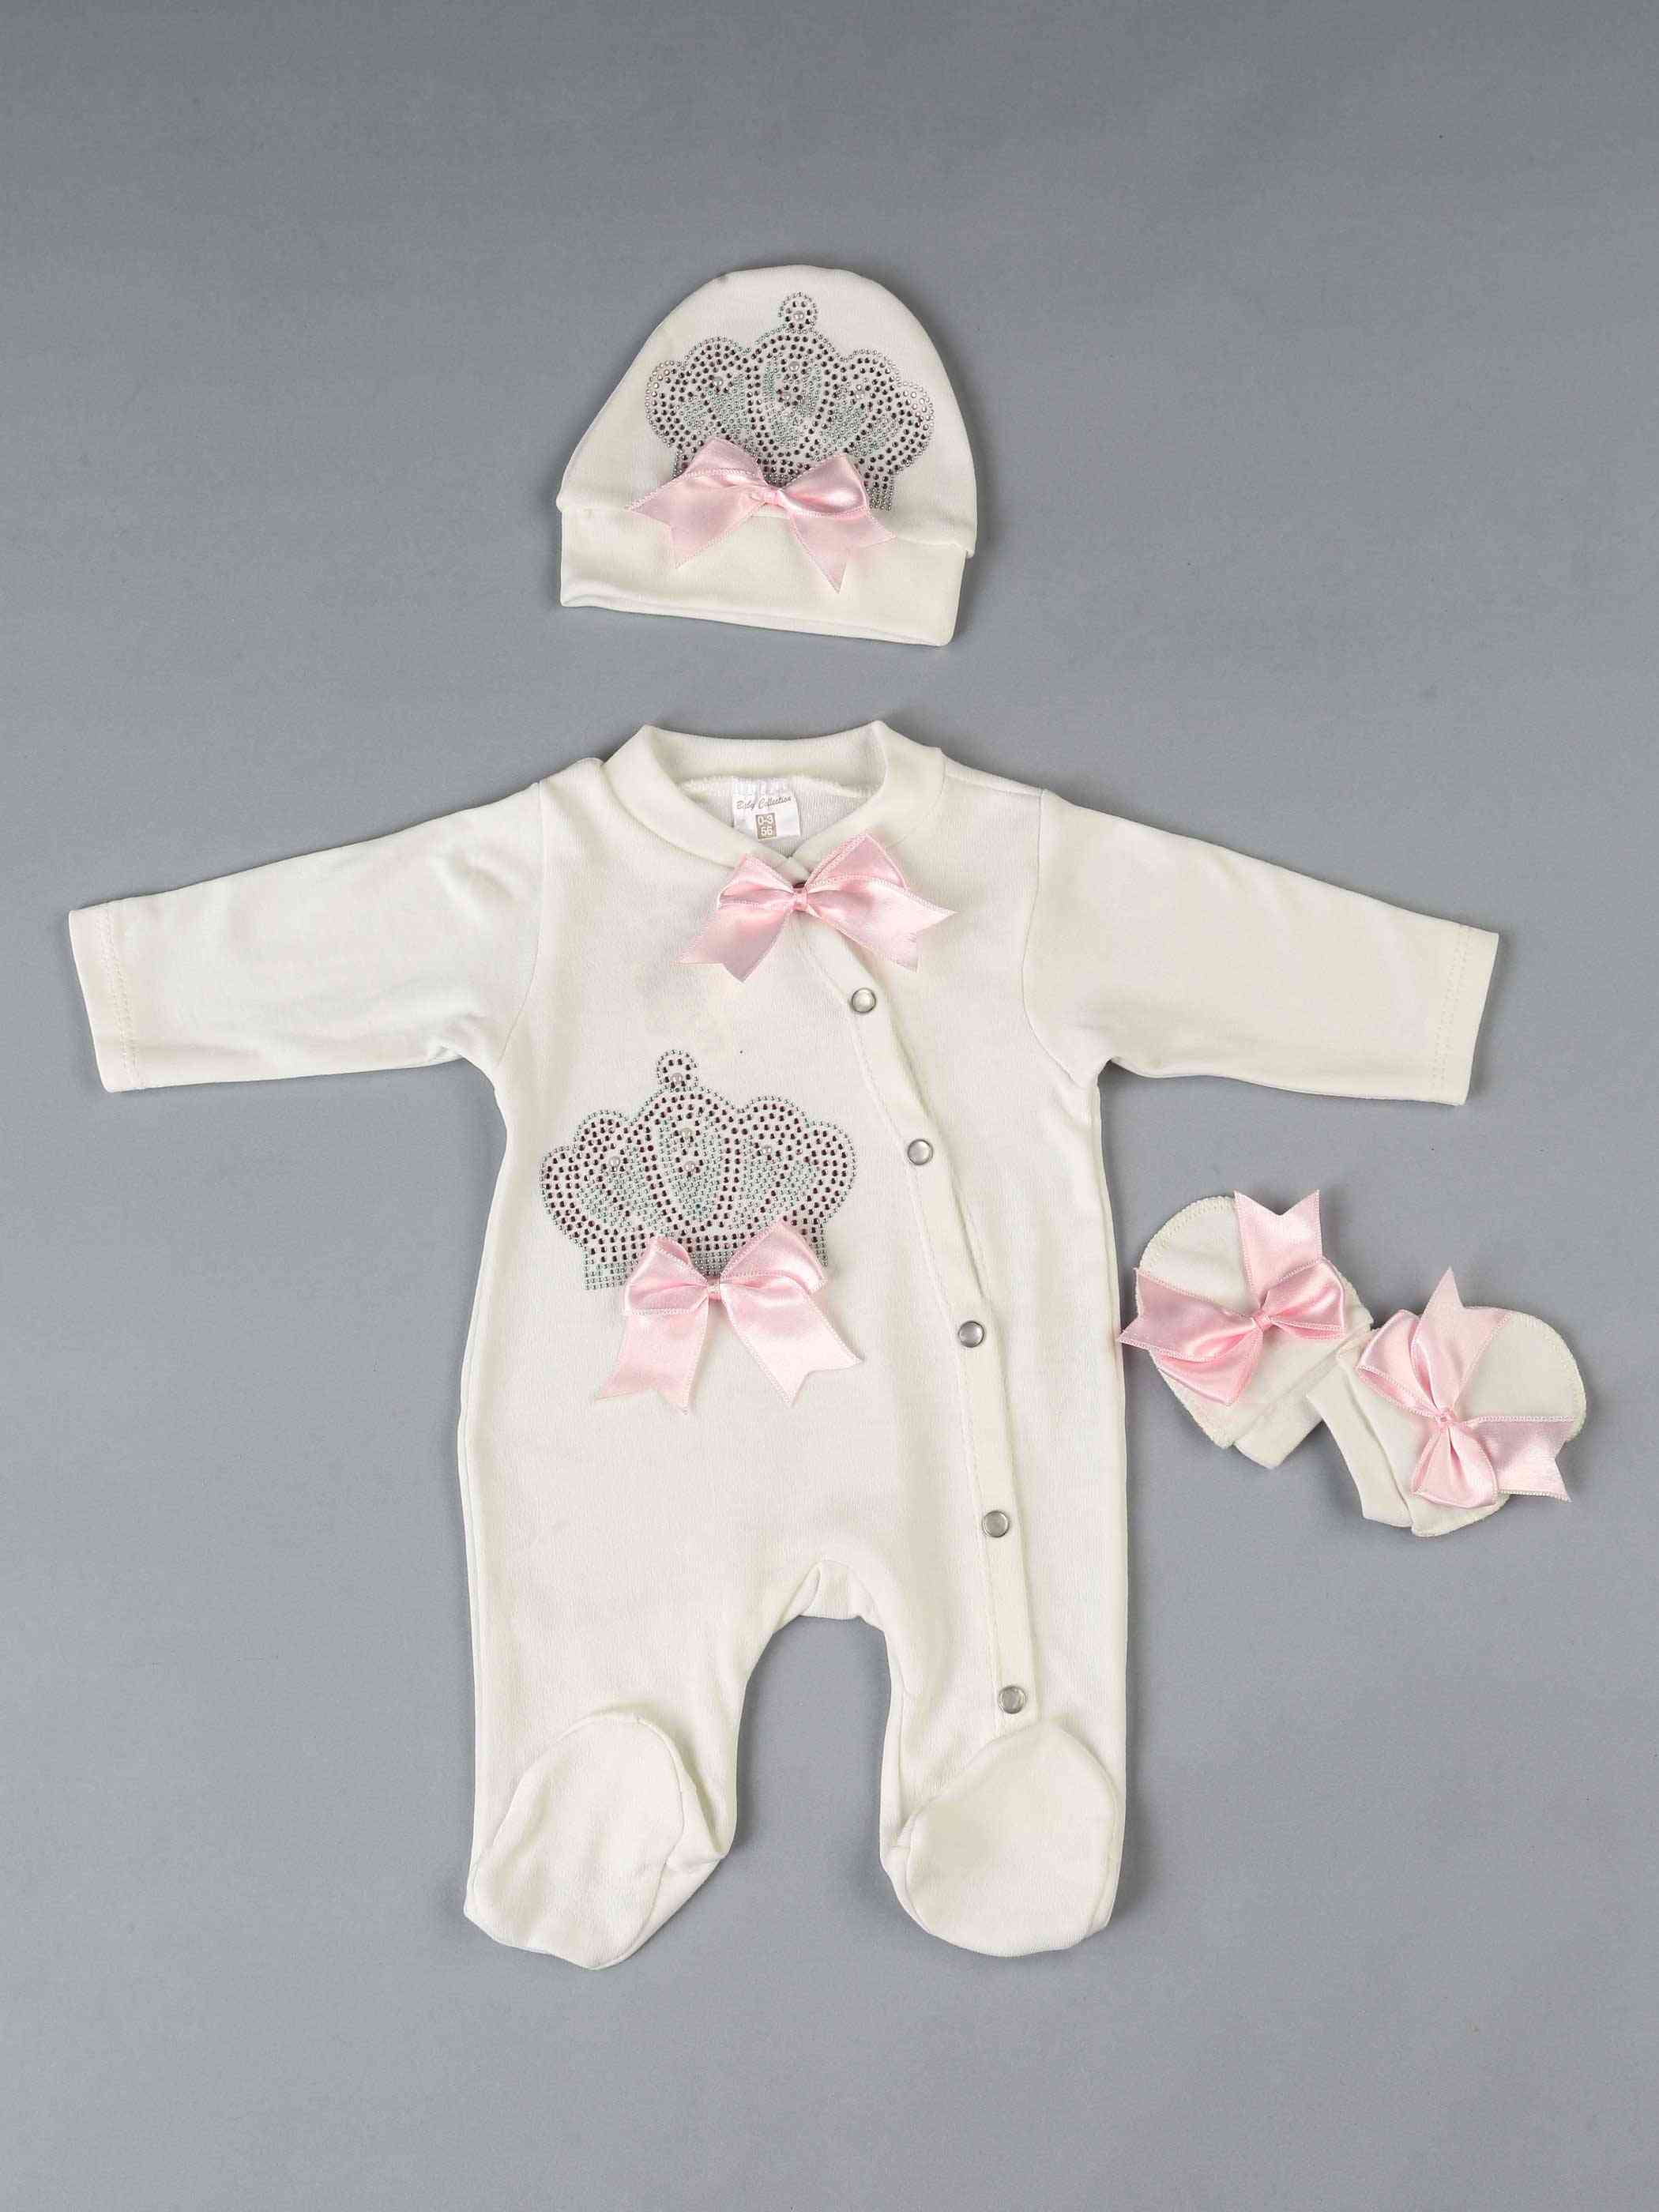 Baby Rompers / Newborn Clothes Set - Cotton Soft Fabric Clothing Models